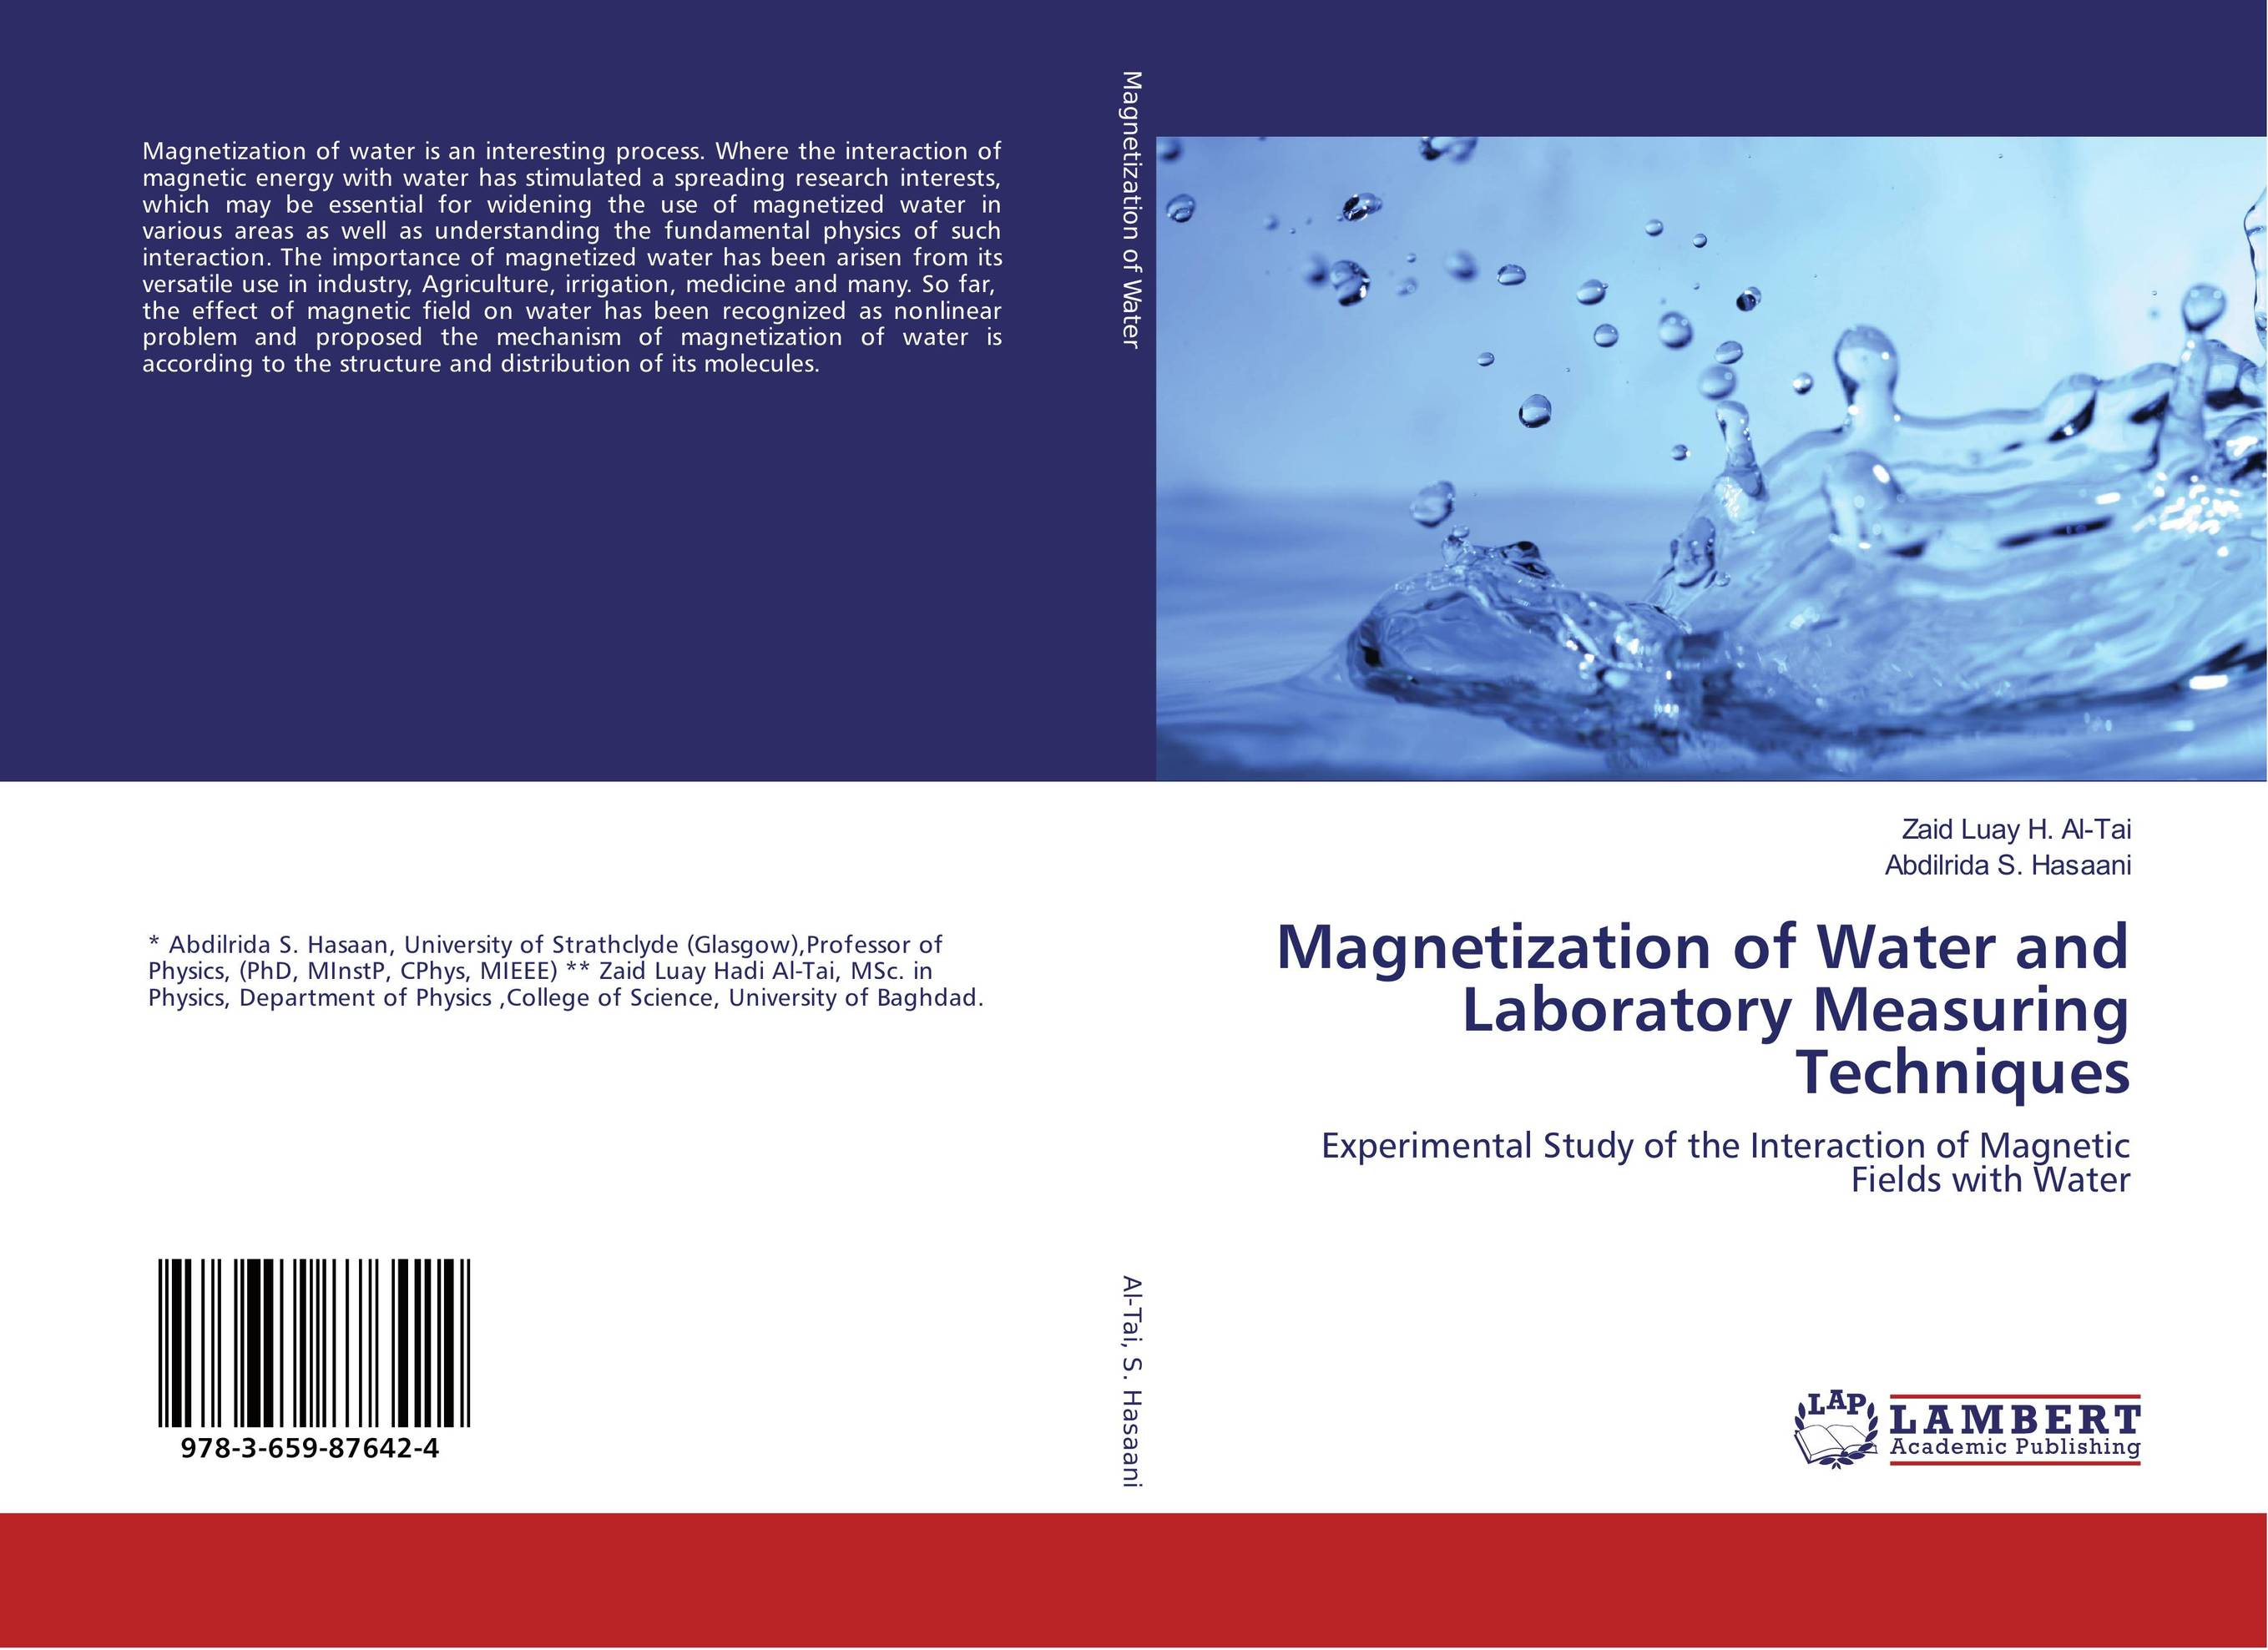 Magnetization of Water and Laboratory Measuring Techniques